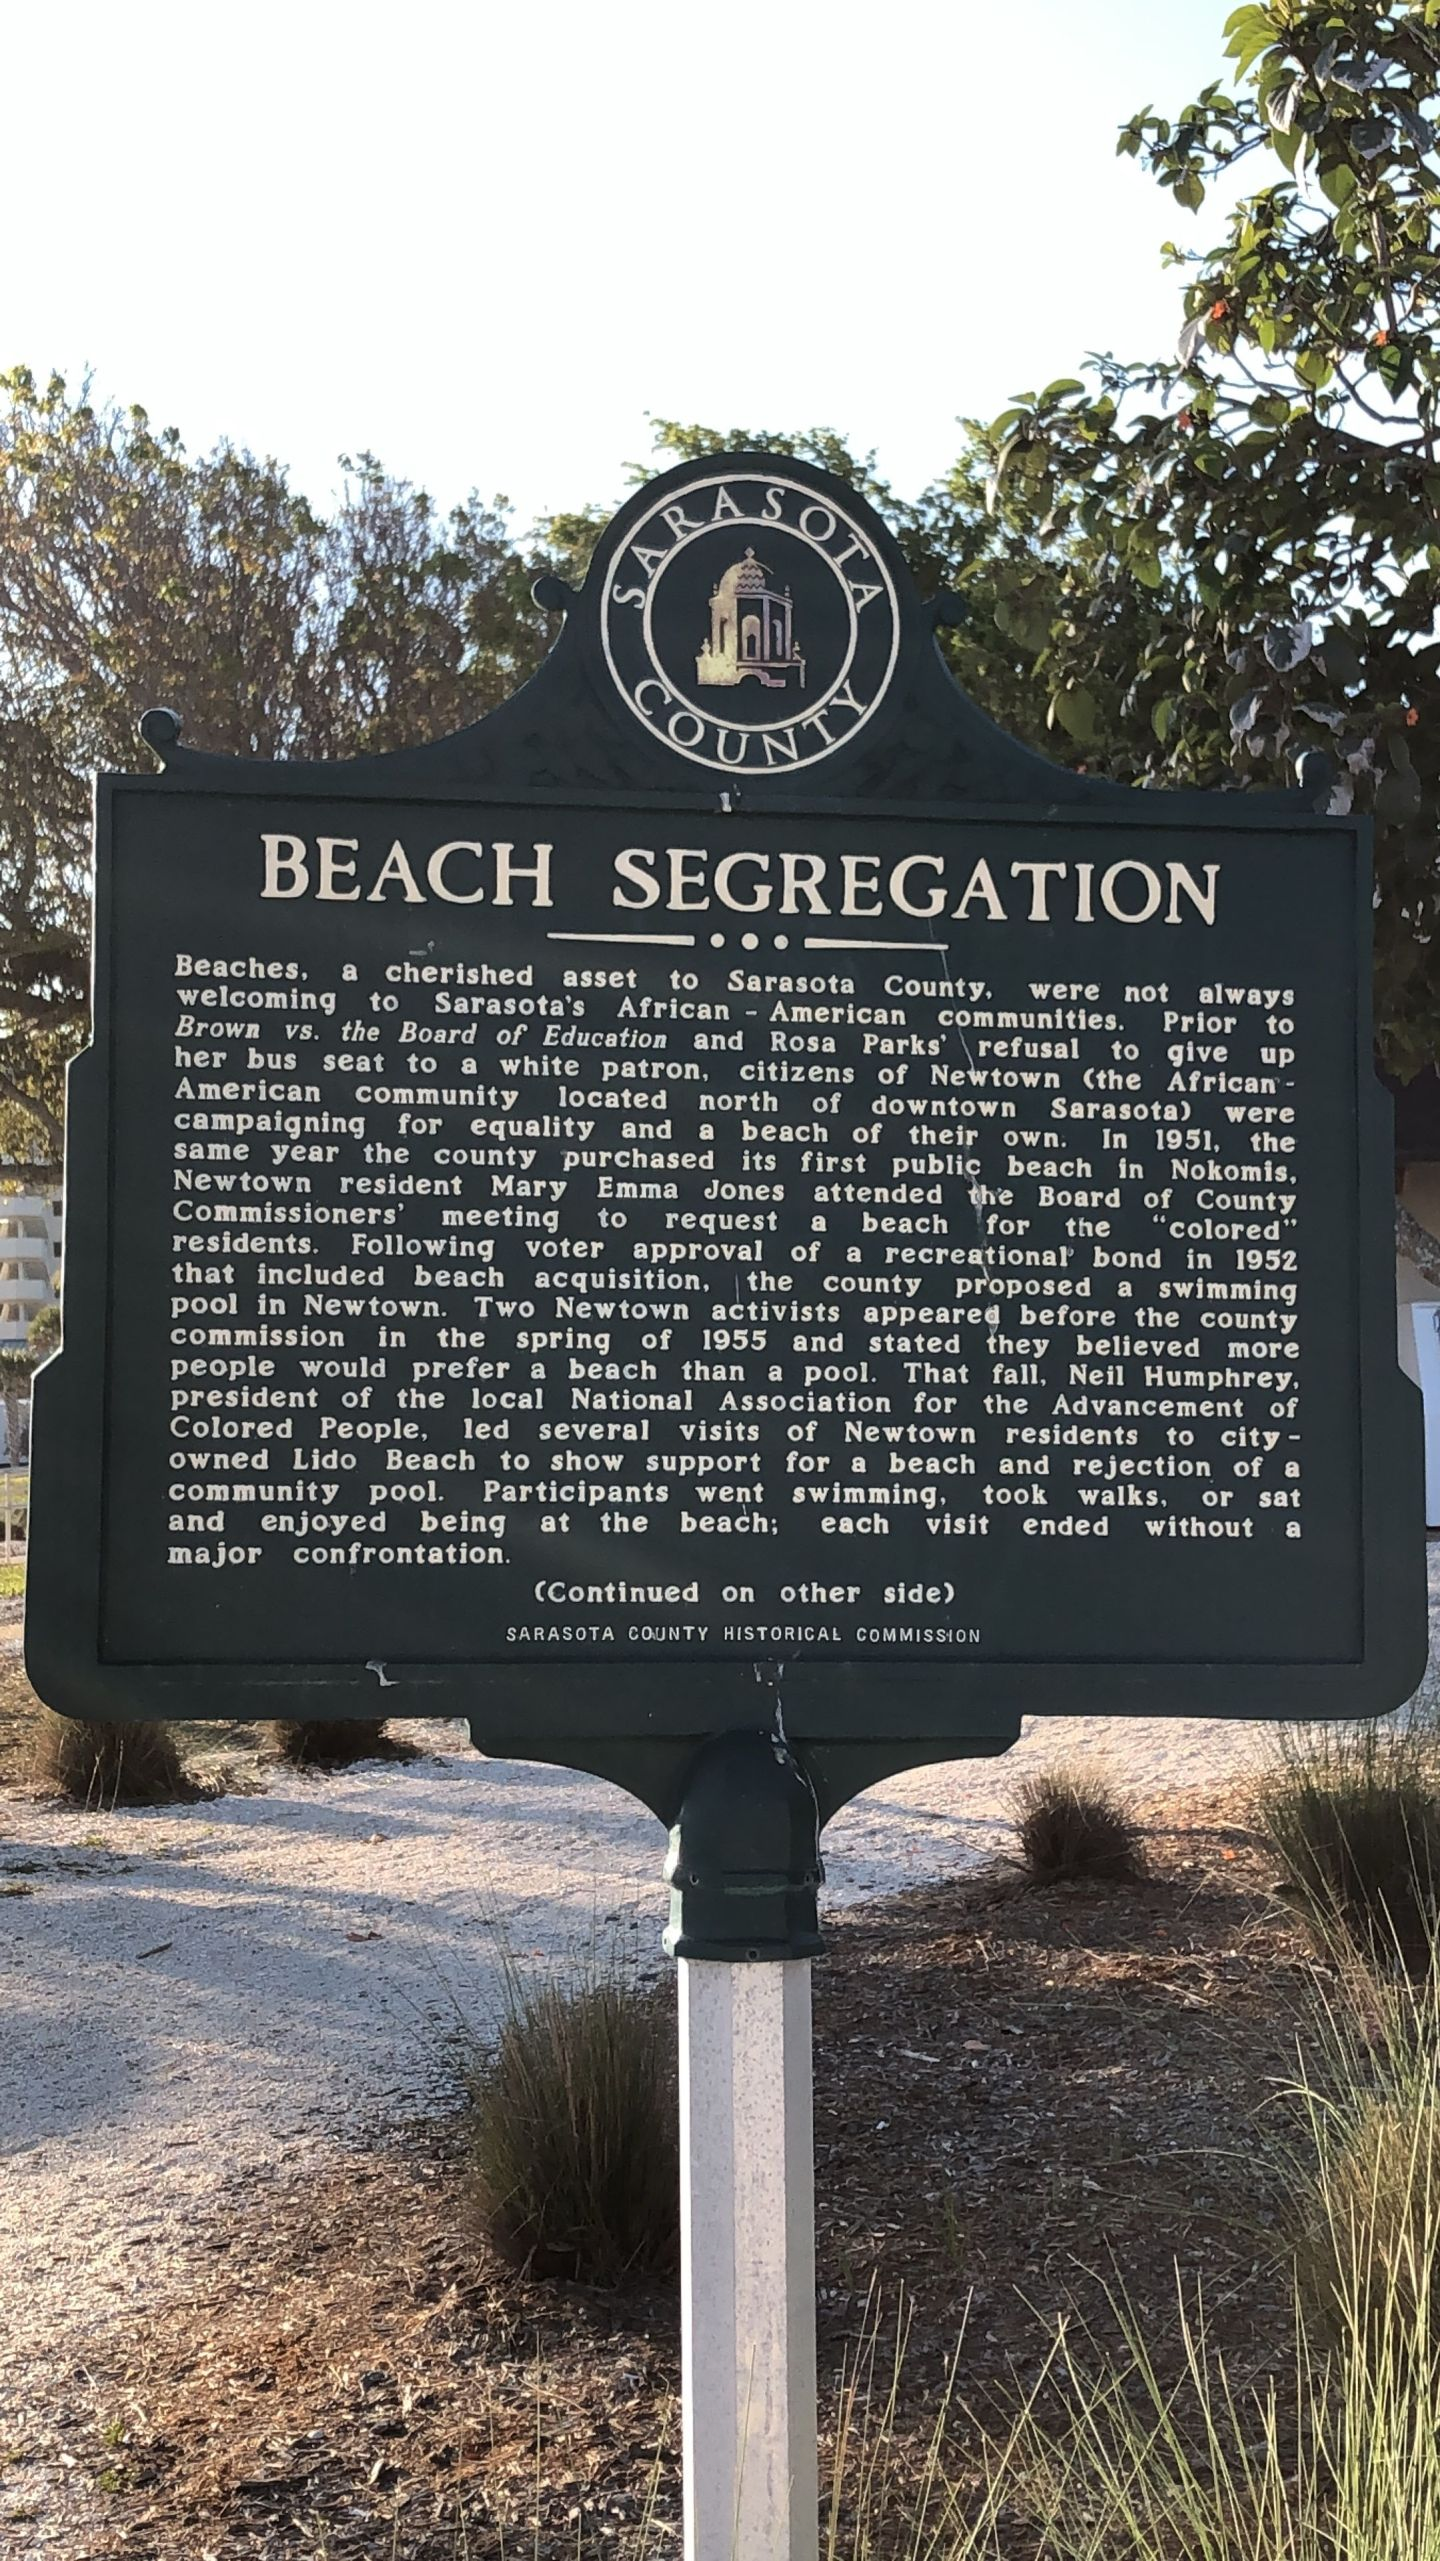 Beach segregation information